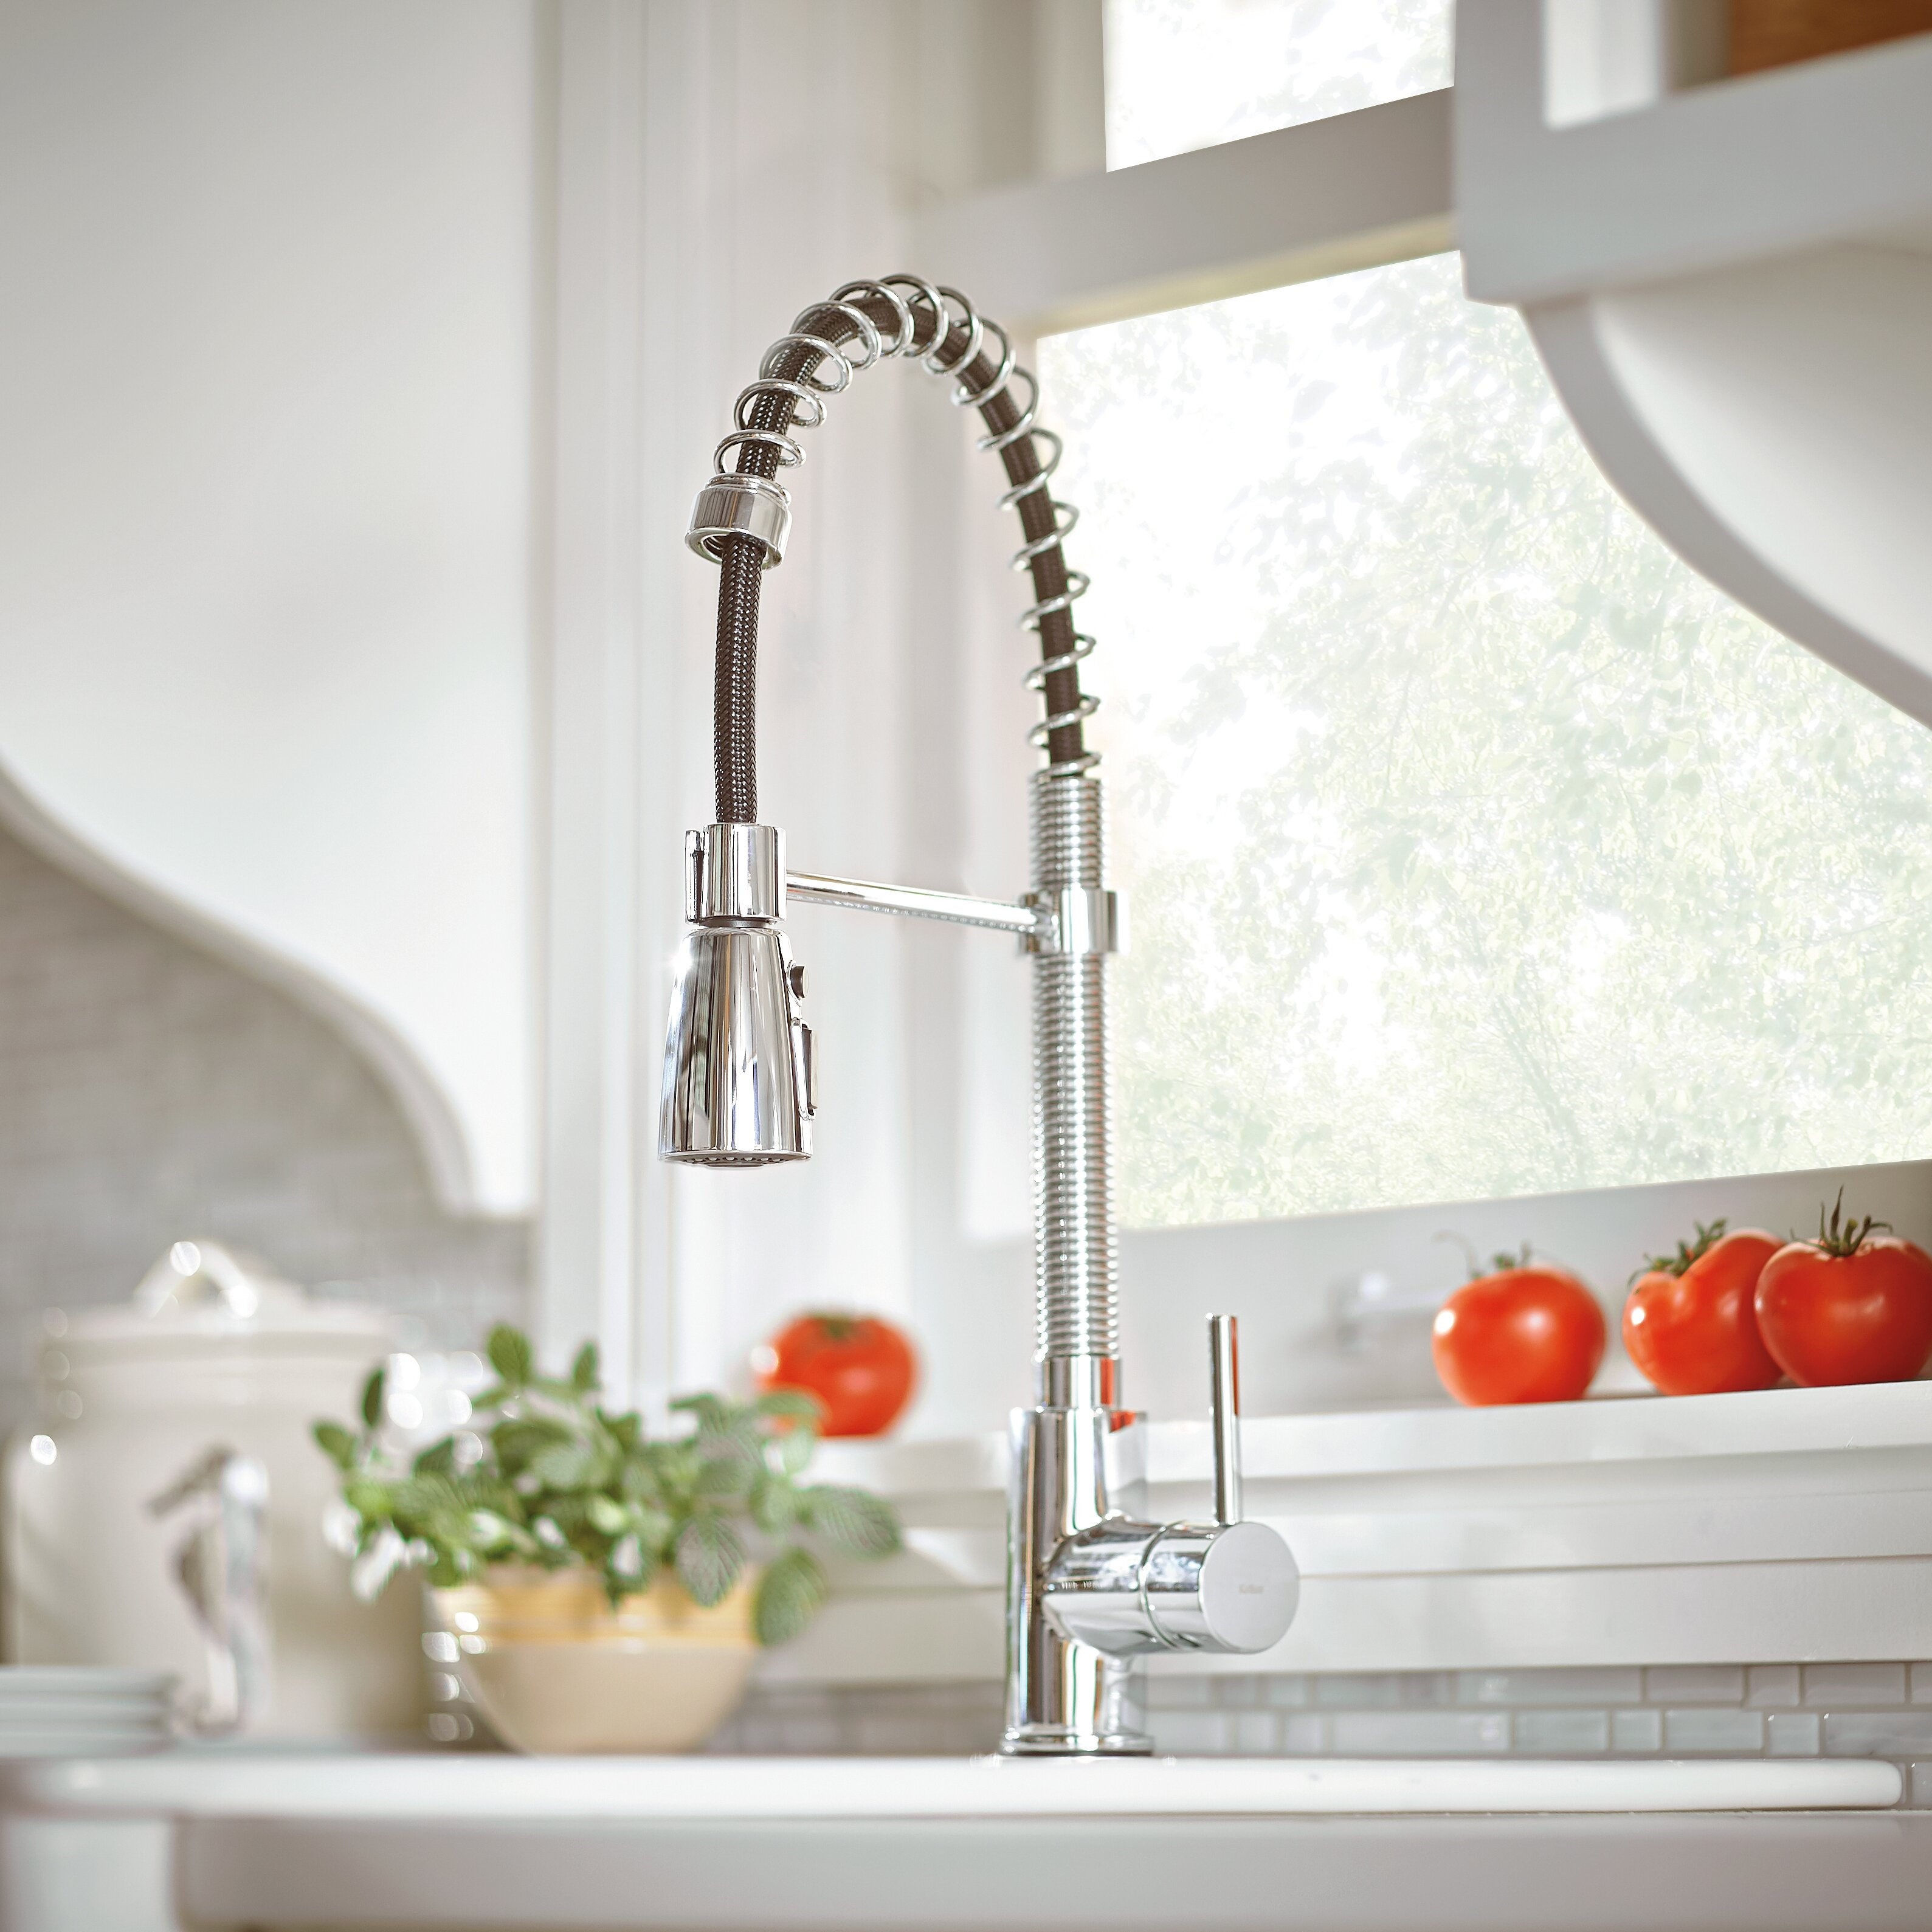 Retractable Kitchen Faucet Kraus Single Handle Pull Down Kitchen Faucet With 3 Function